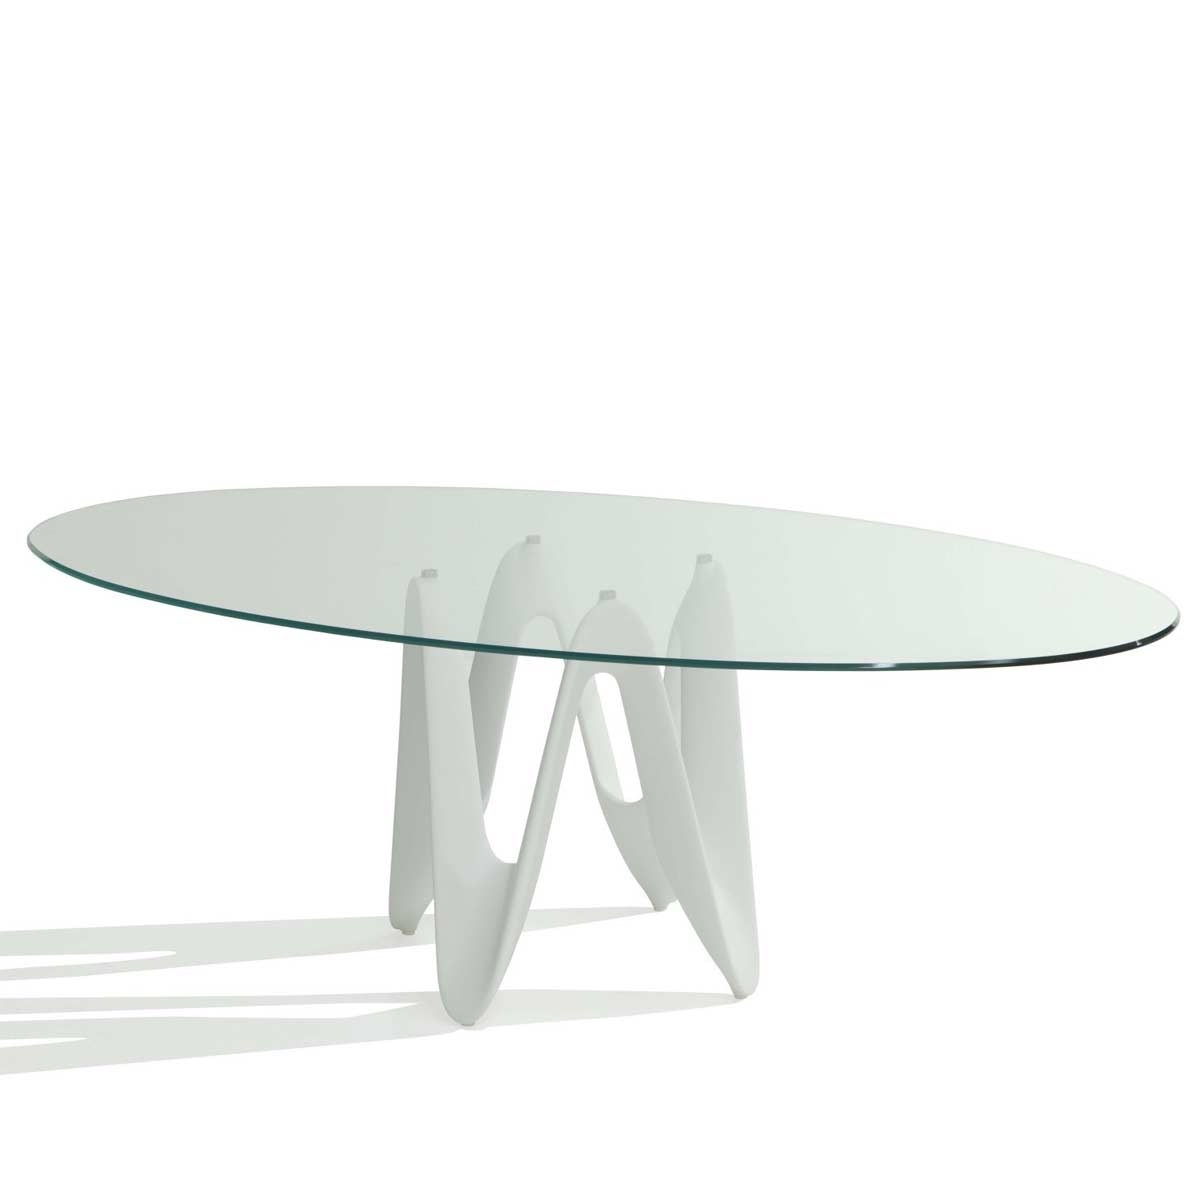 Lambda Oval Glass Dining Table Klarity Glass Furniture